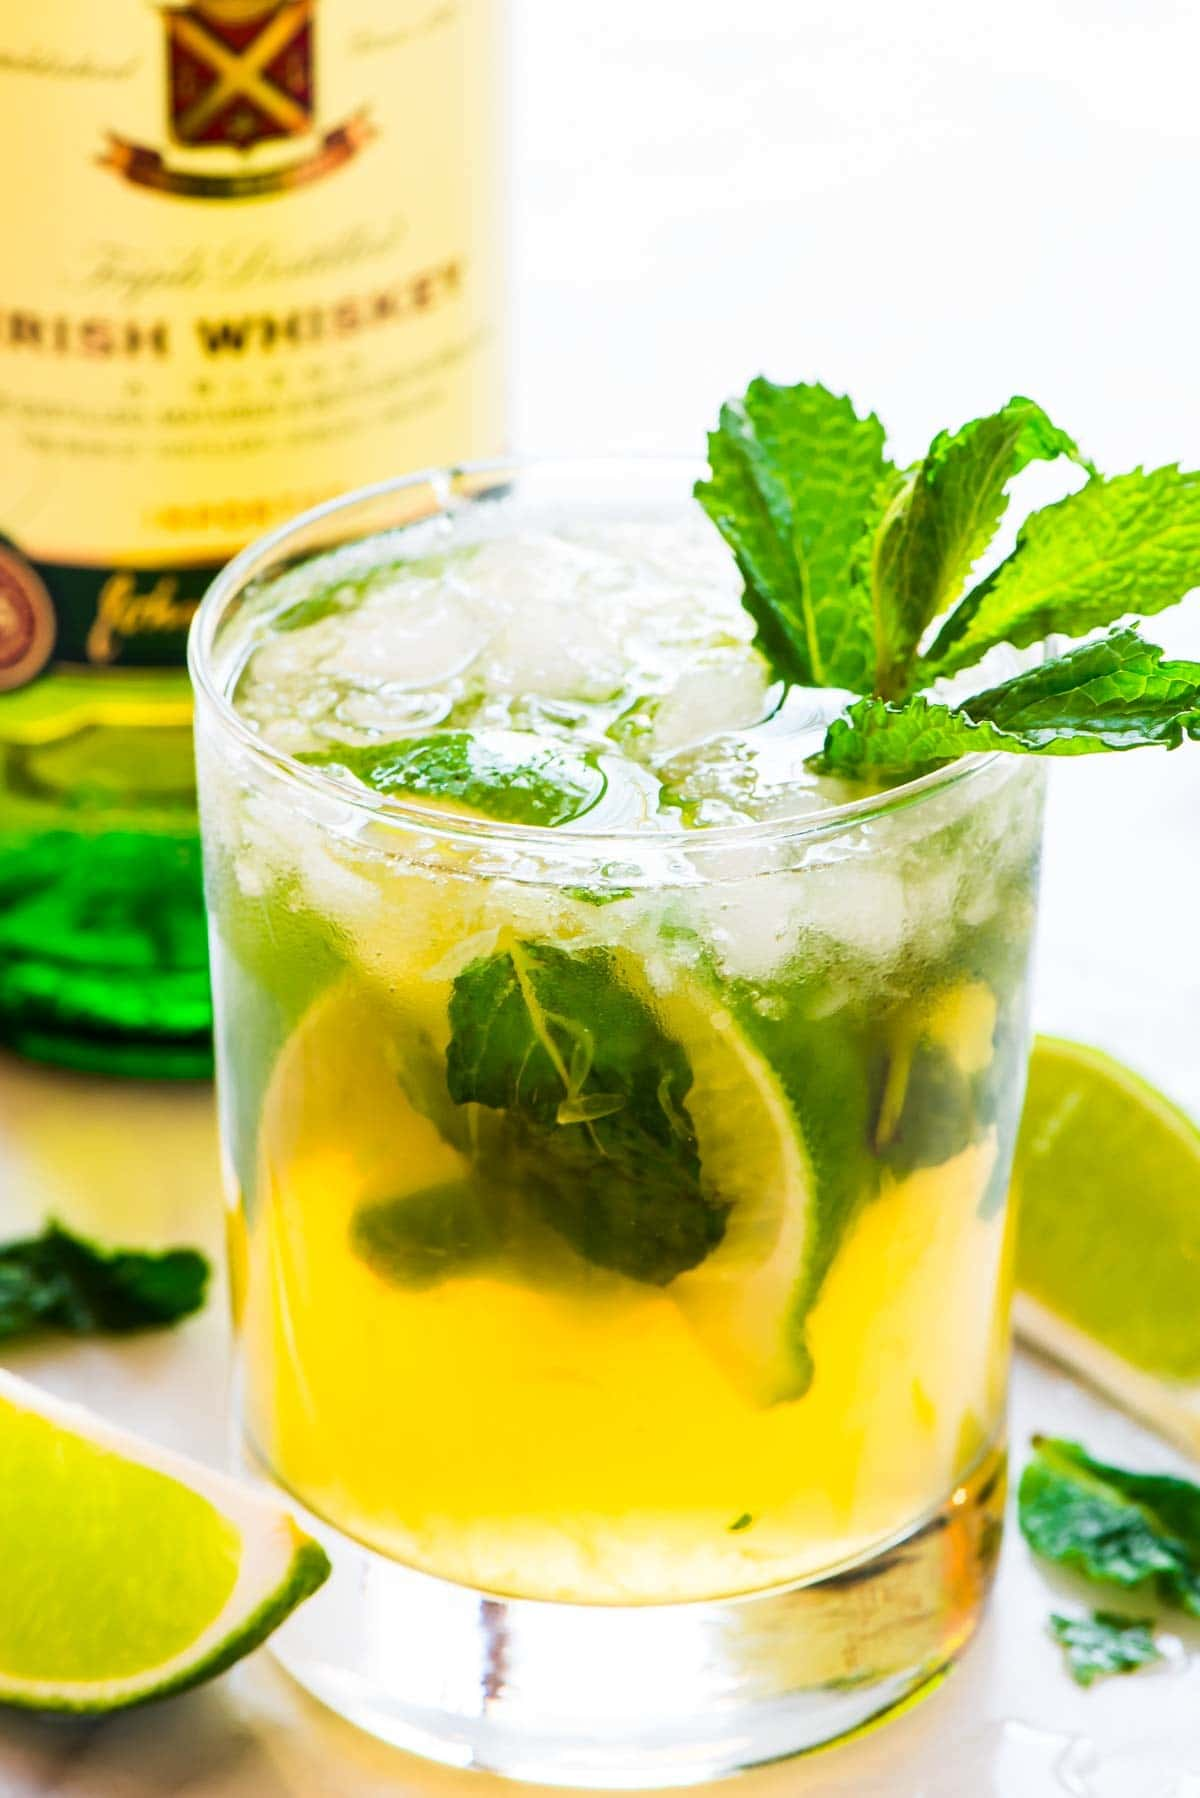 Swap lemon for lime in classic whiskey smash cocktails, and you have a GREEN Whiskey Smash for St. Patrick's Day! Recipe at wellplated.com | @wellplated